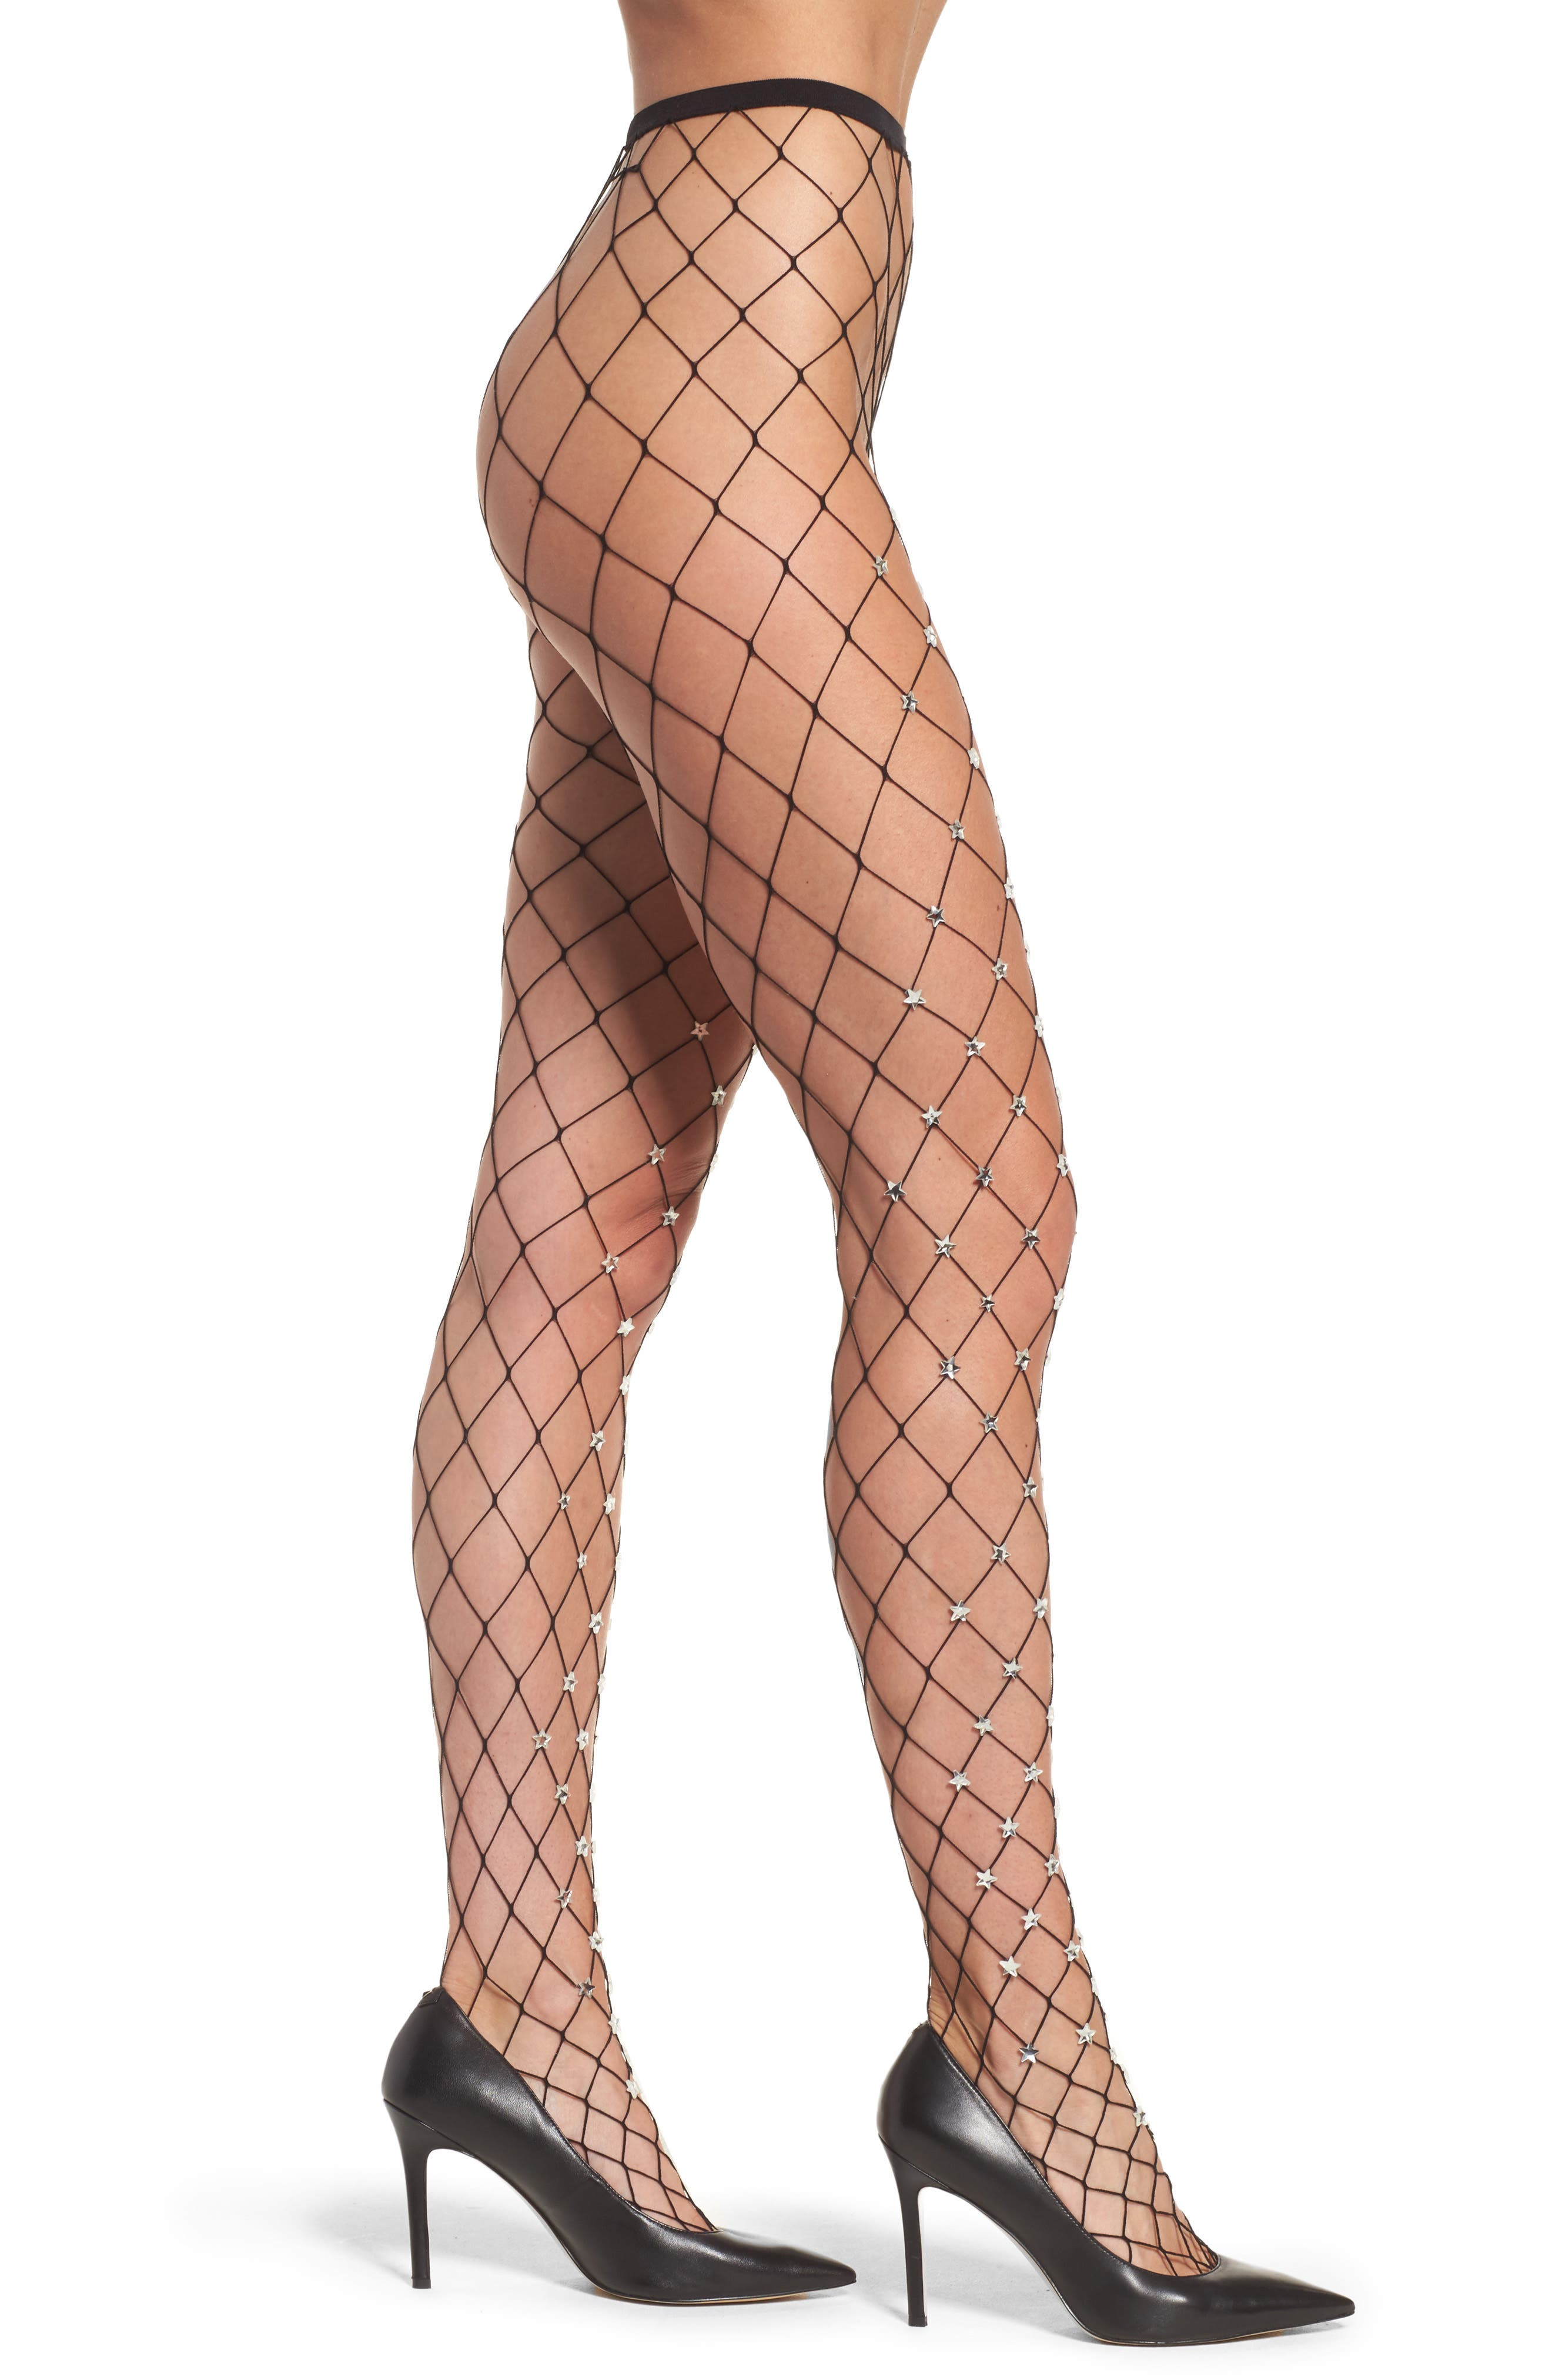 Silver Starry Fishnet Tights,                         Main,                         color, 001